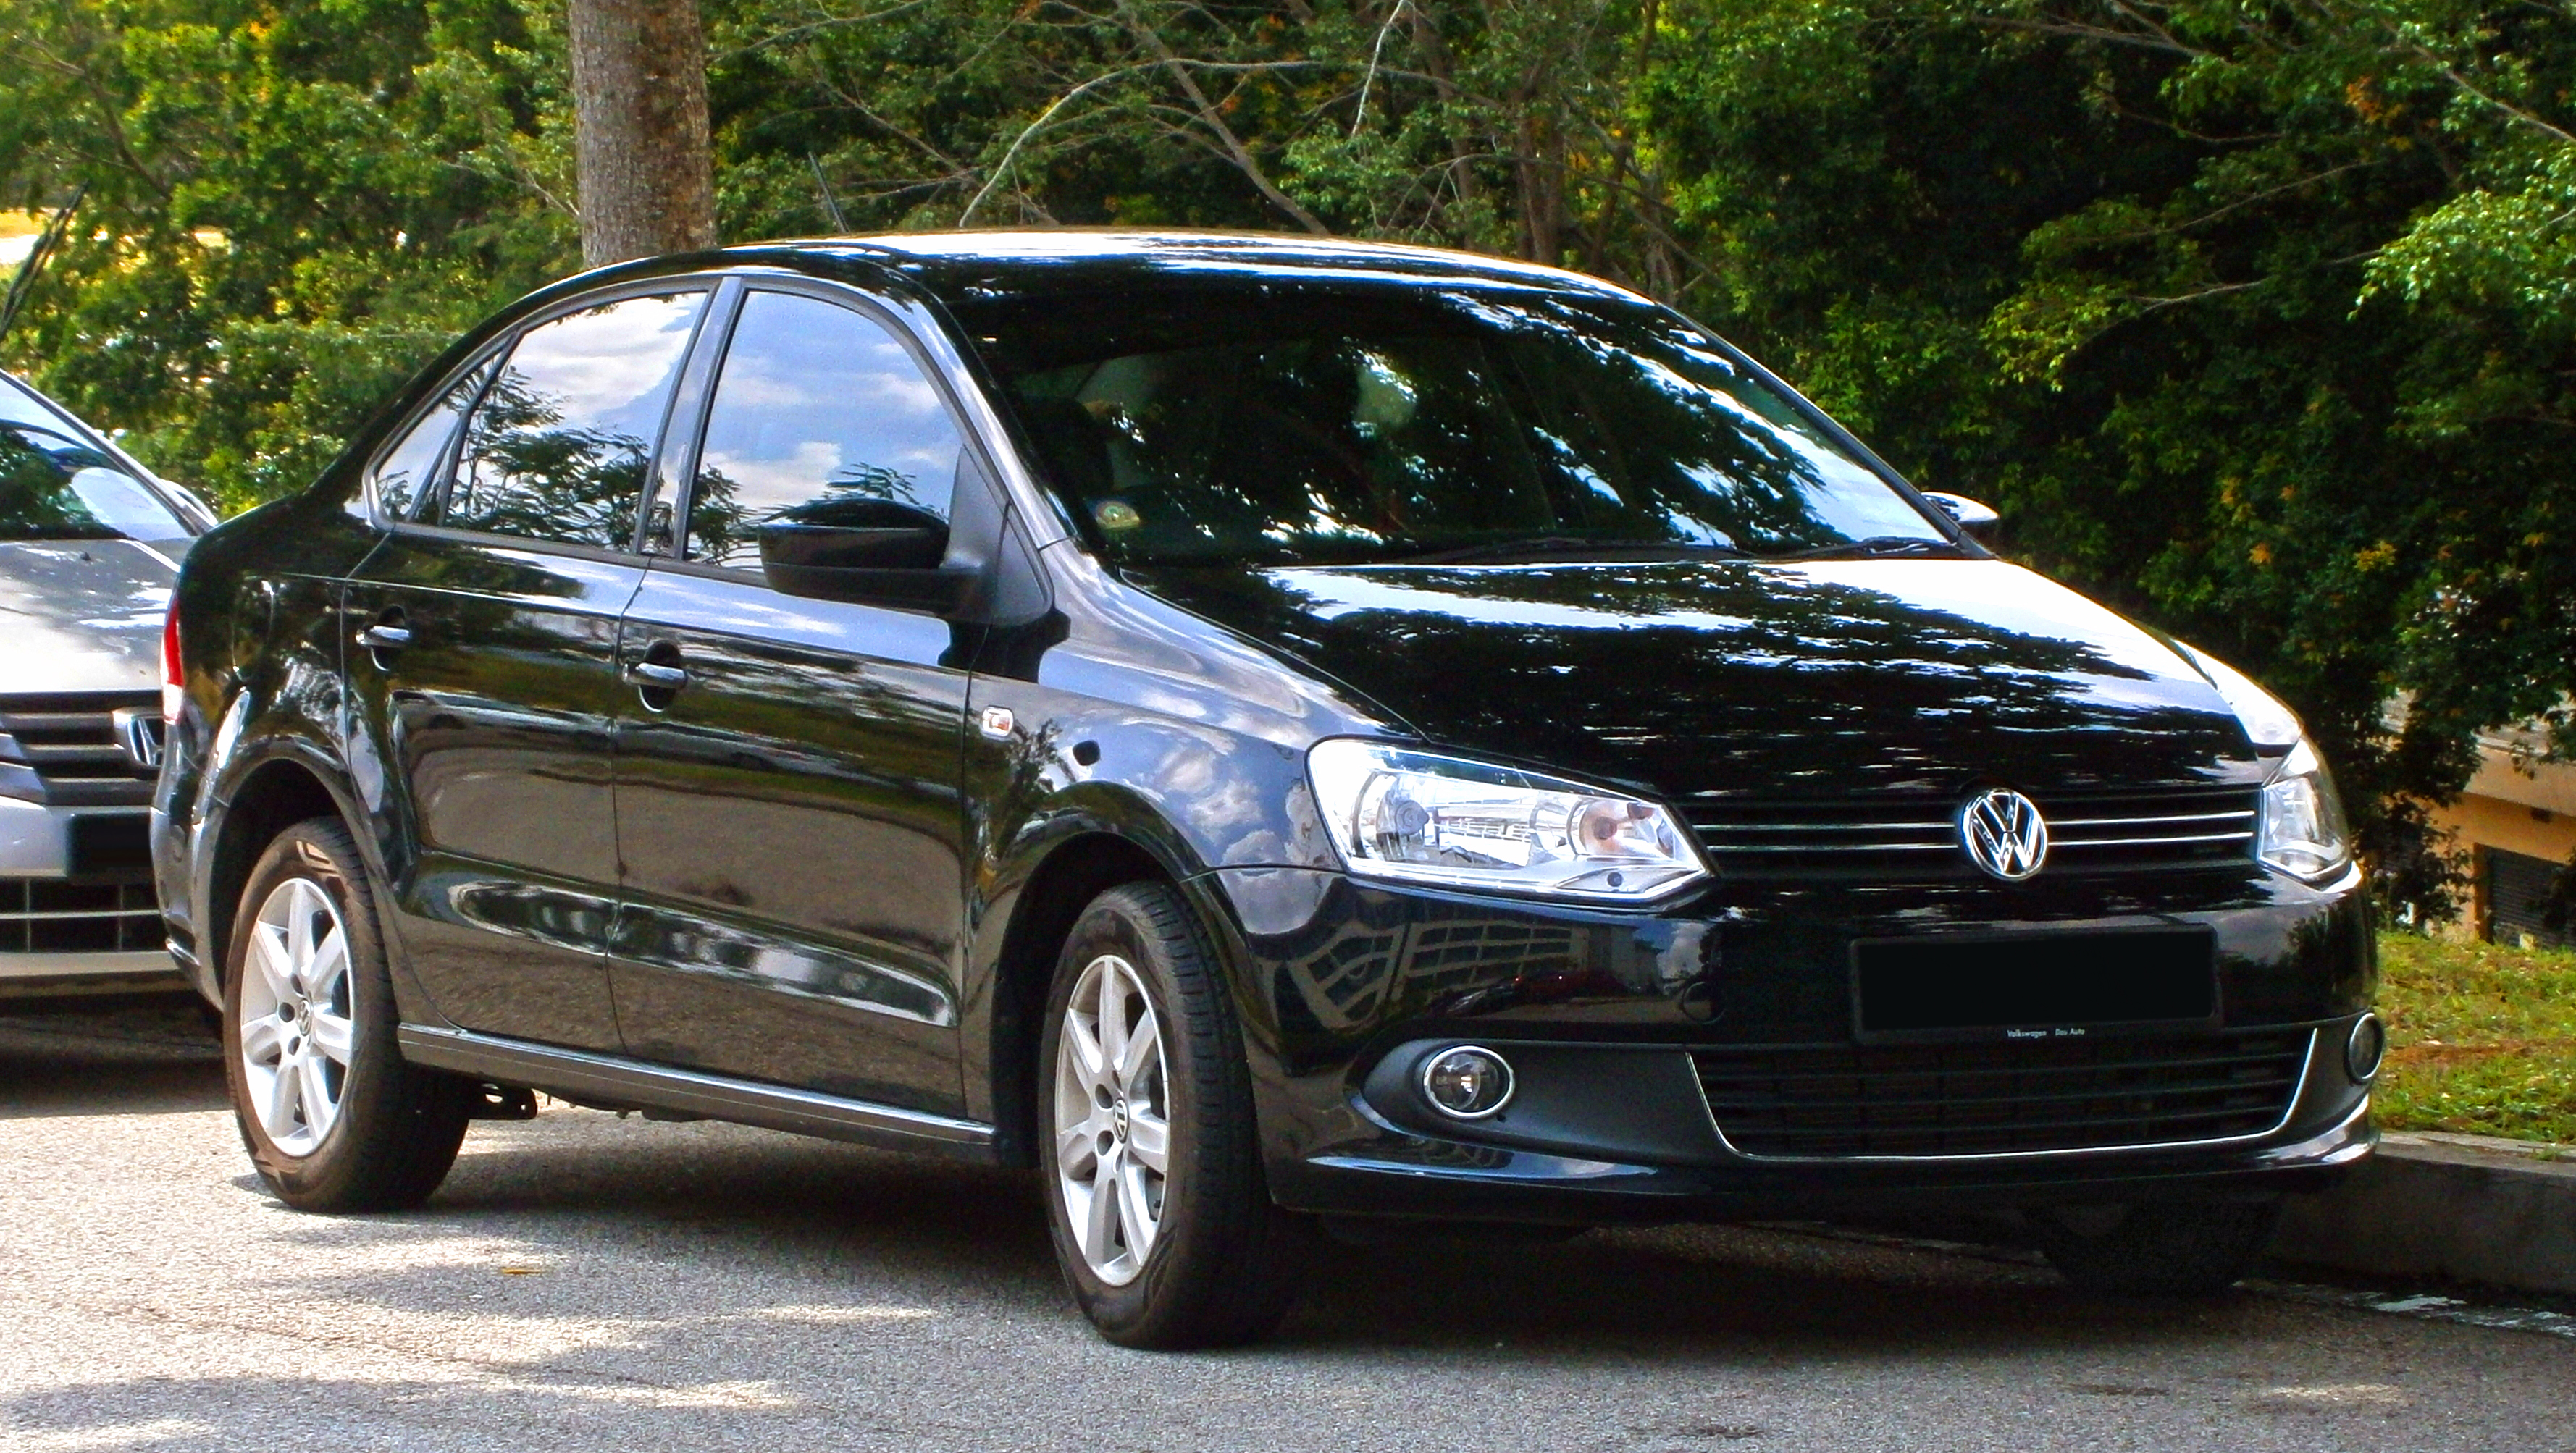 file 2014 volkswagen polo sedan ckd in cyberjaya malaysia 01 jpg wikimedia commons. Black Bedroom Furniture Sets. Home Design Ideas